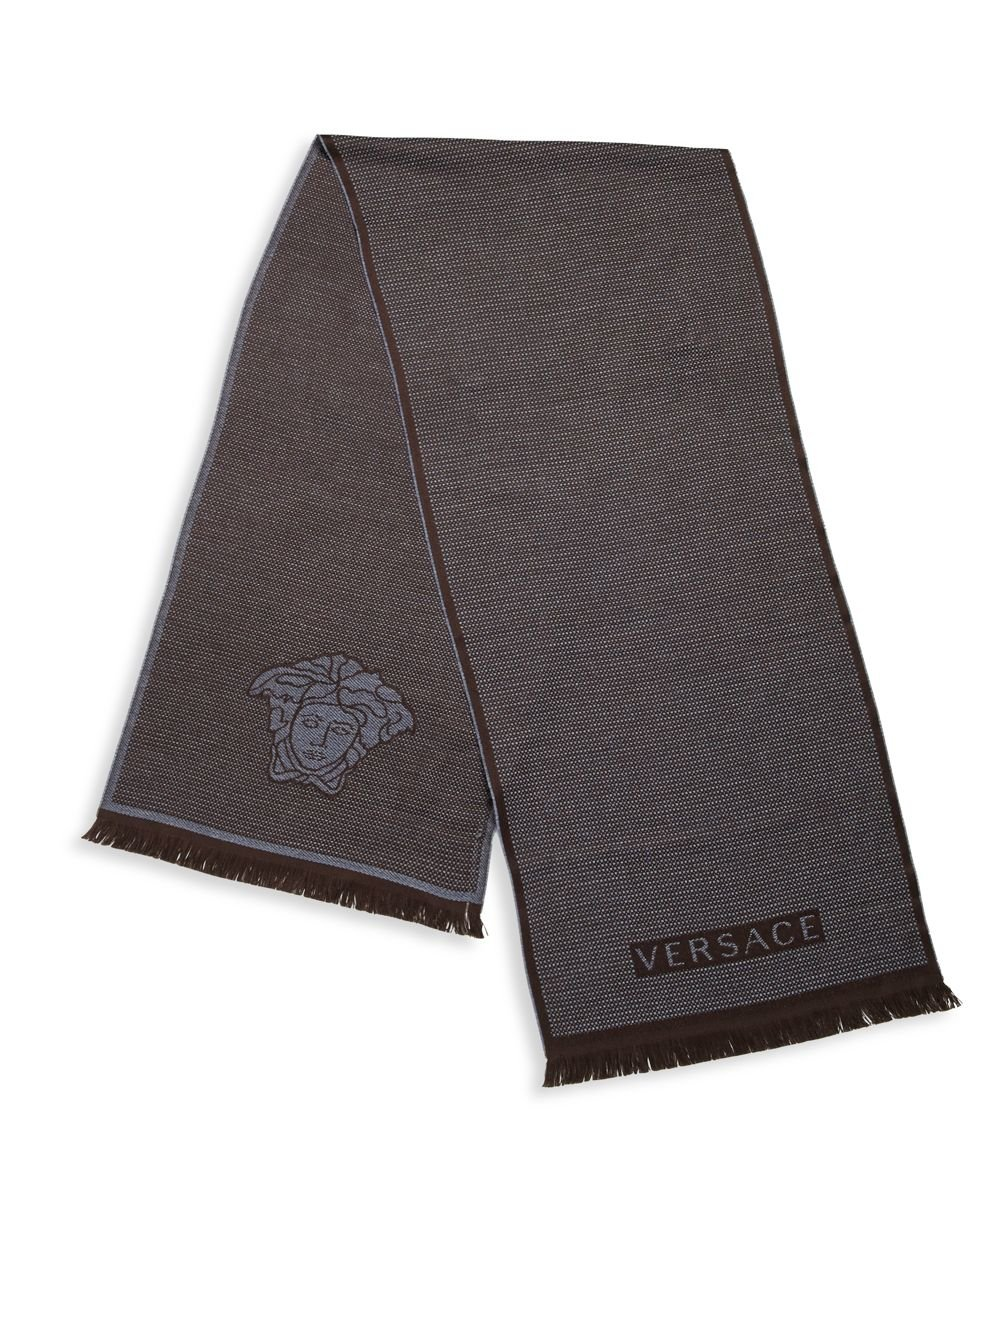 Versace Men's Box Print Wool Scarf, OS, Brown / Navy by V1969 by VERSACE